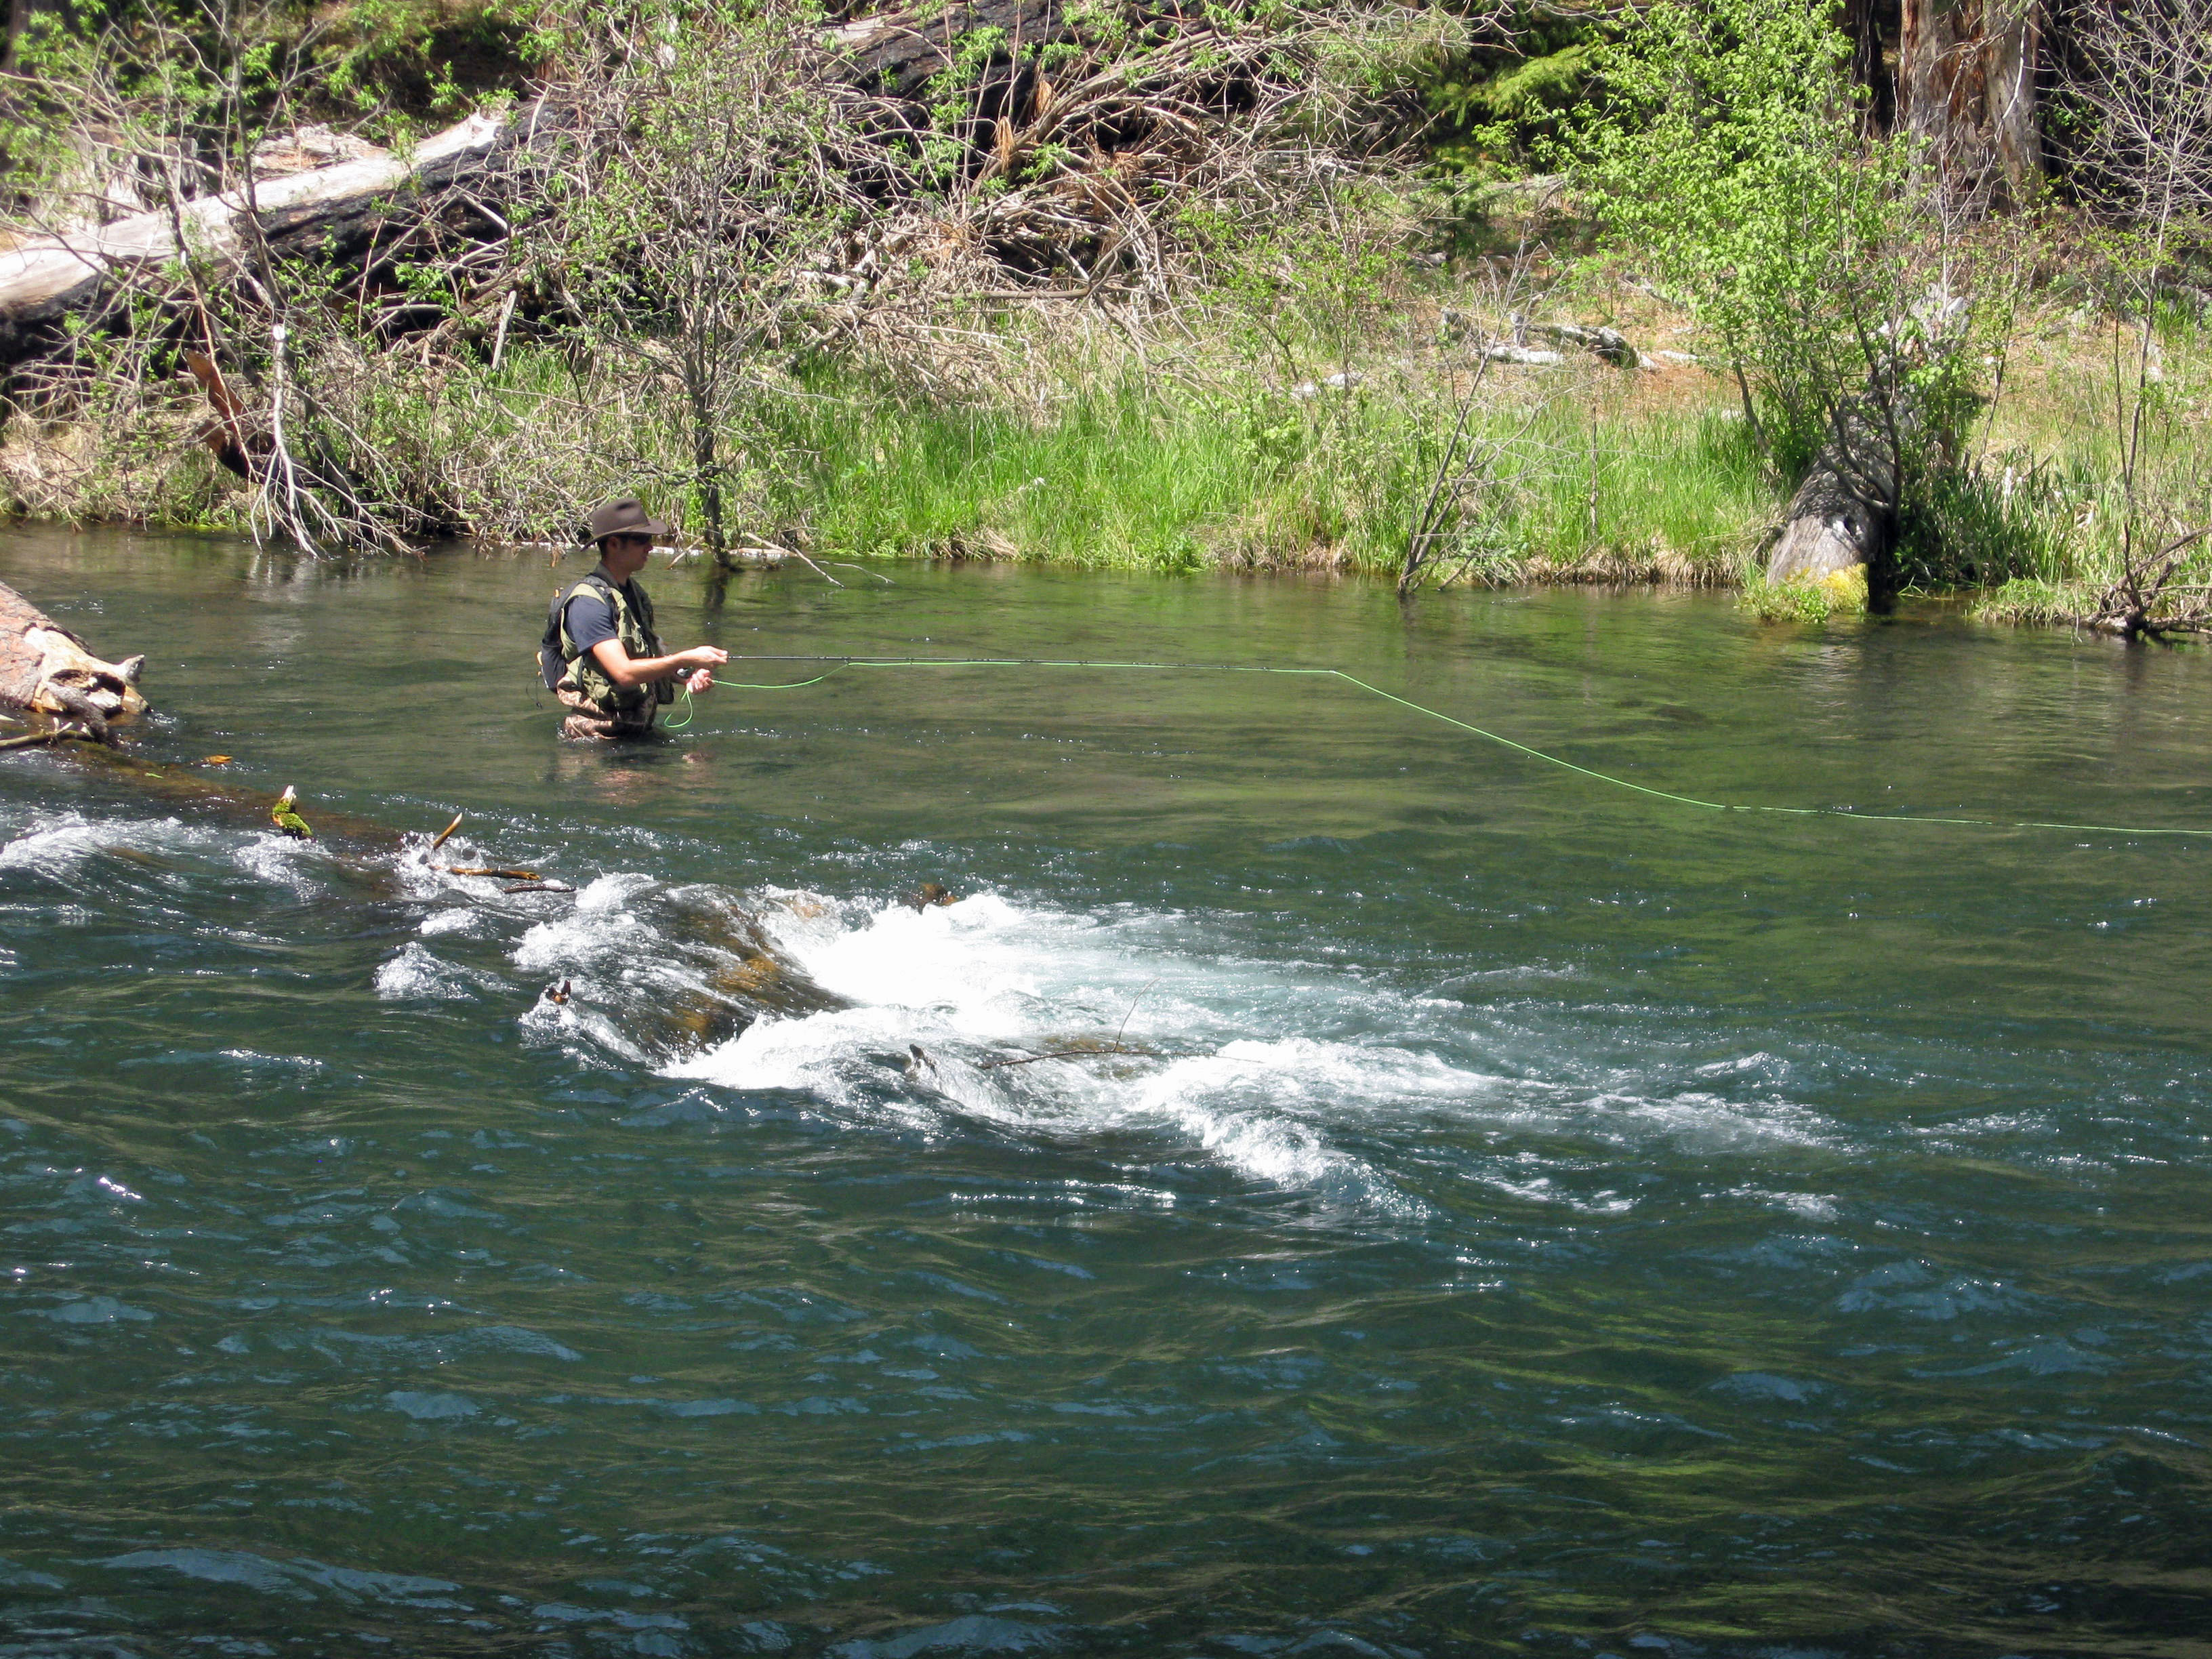 Metolius river cabin fever chronicles getting outdoors for House of metolius